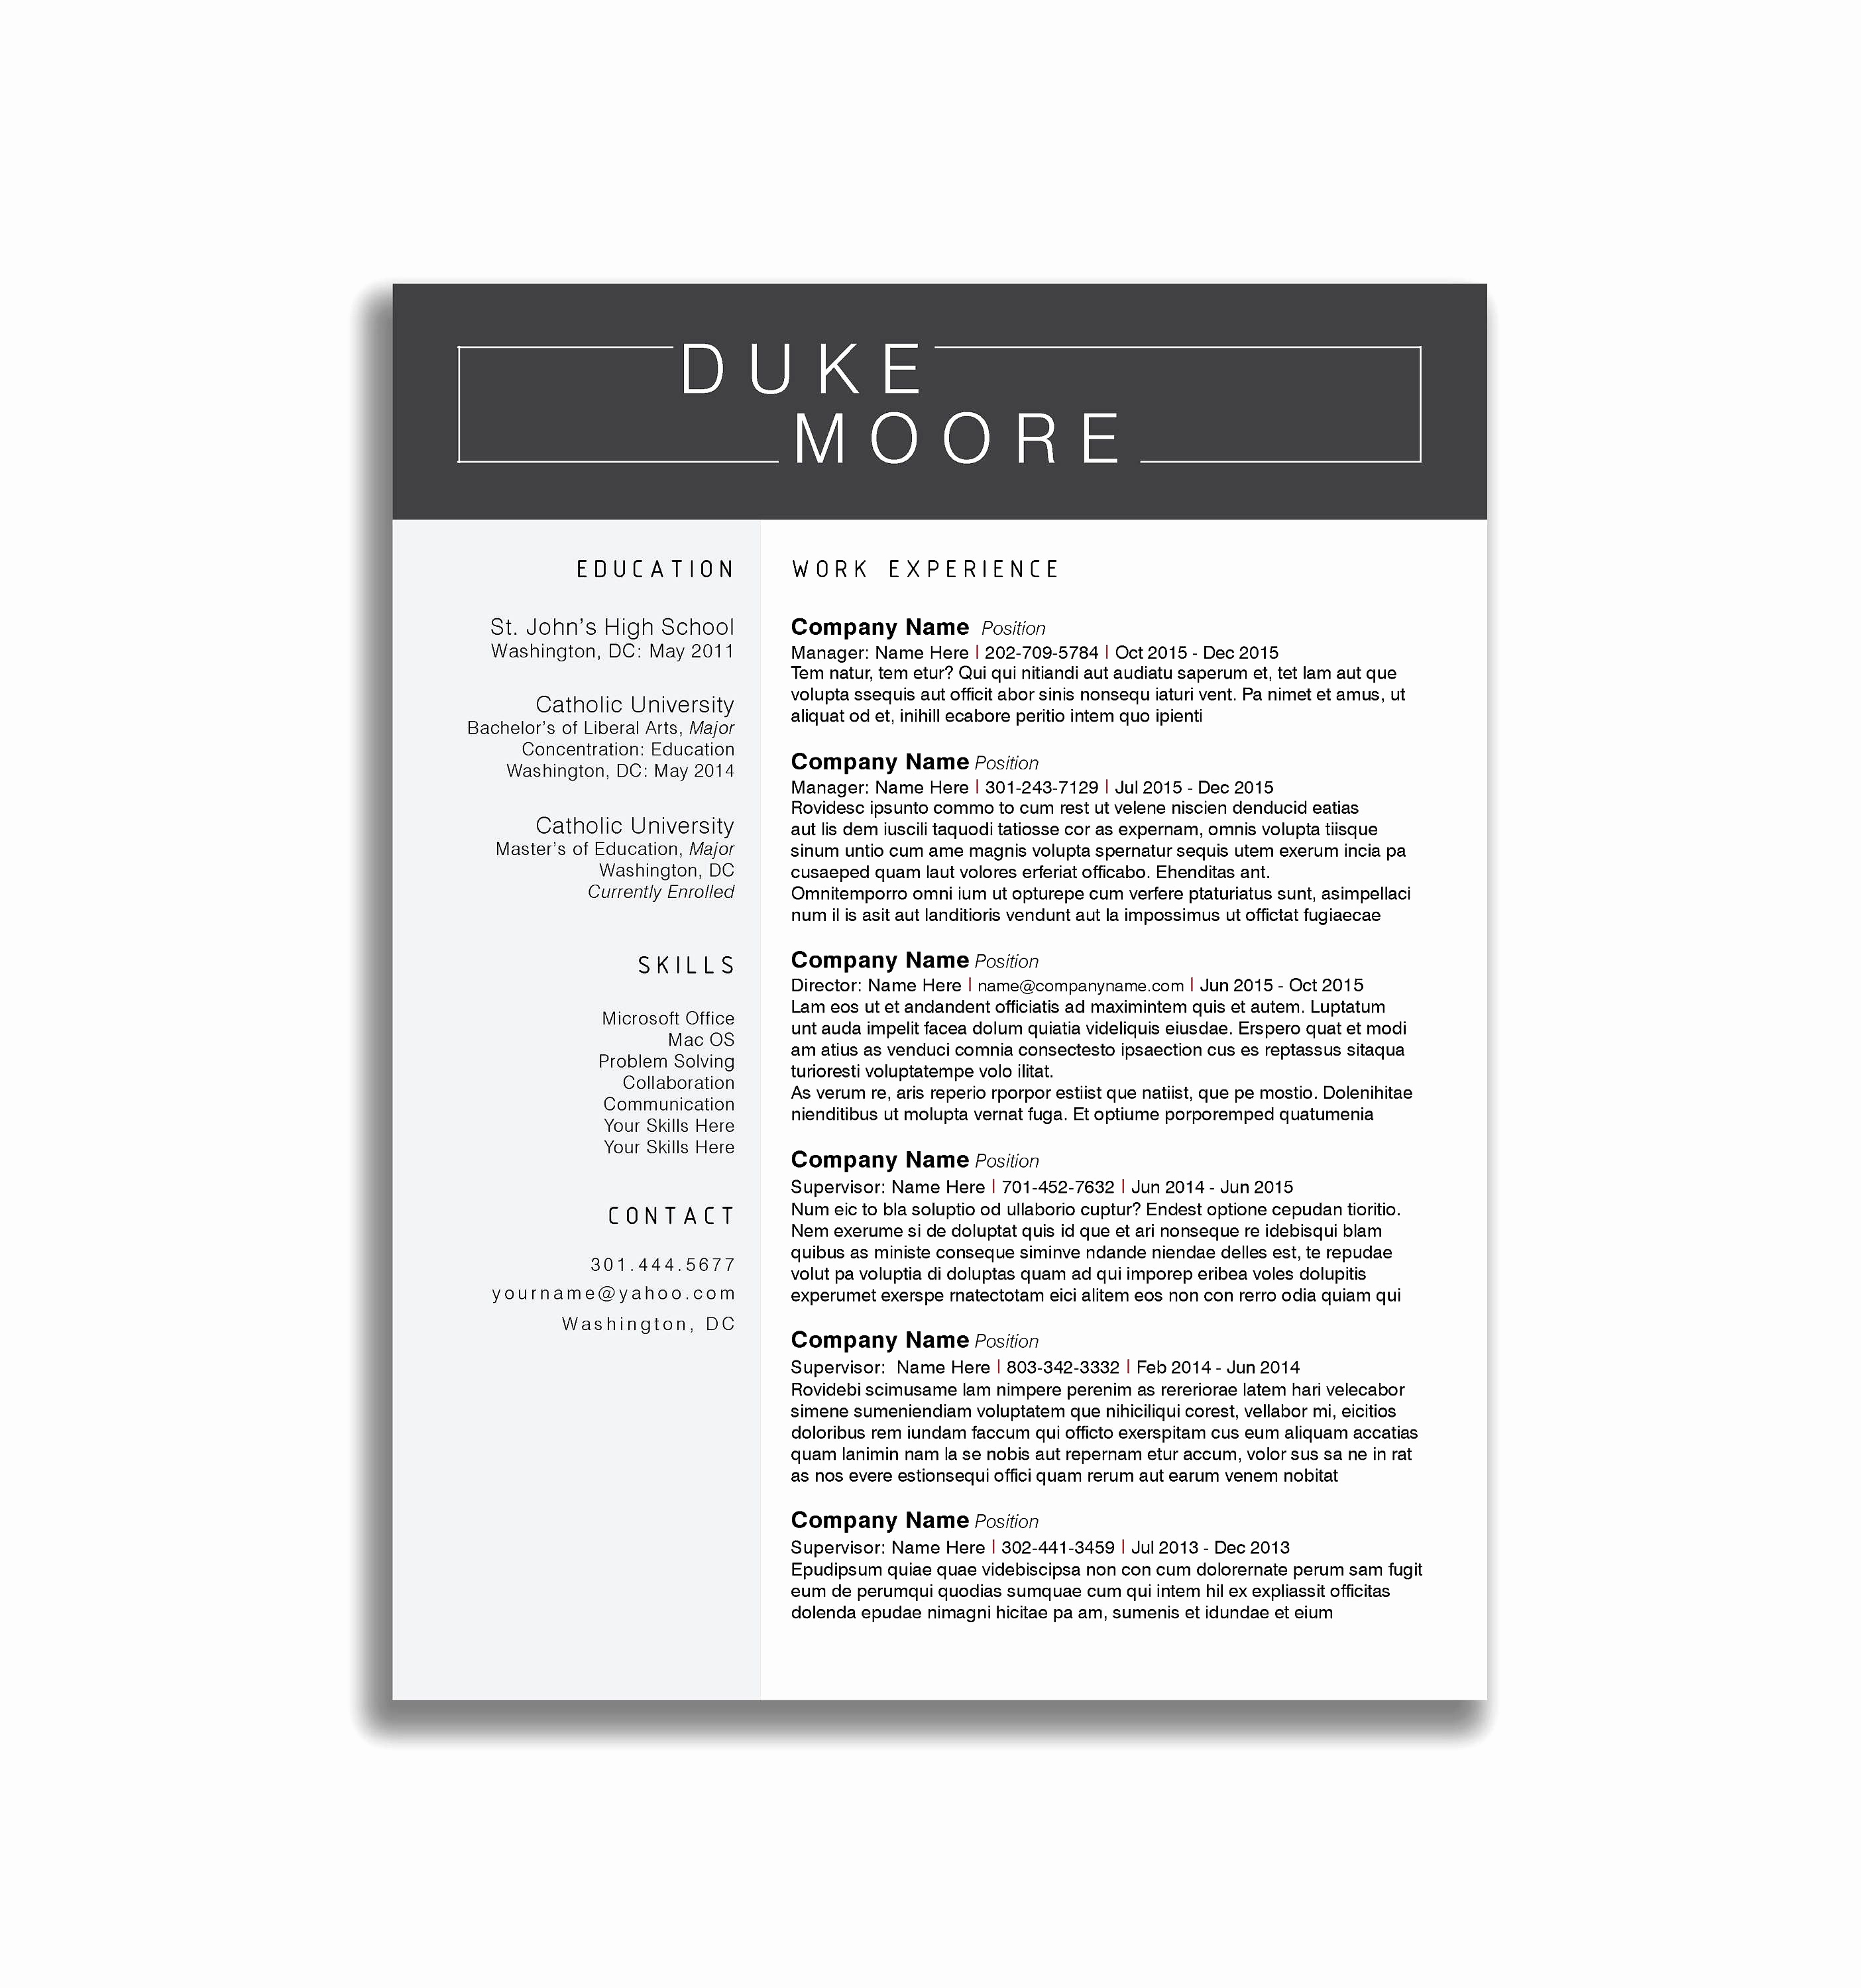 Resume Template Construction - Construction Laborer Resume Sample 38 New Construction Worker Resume